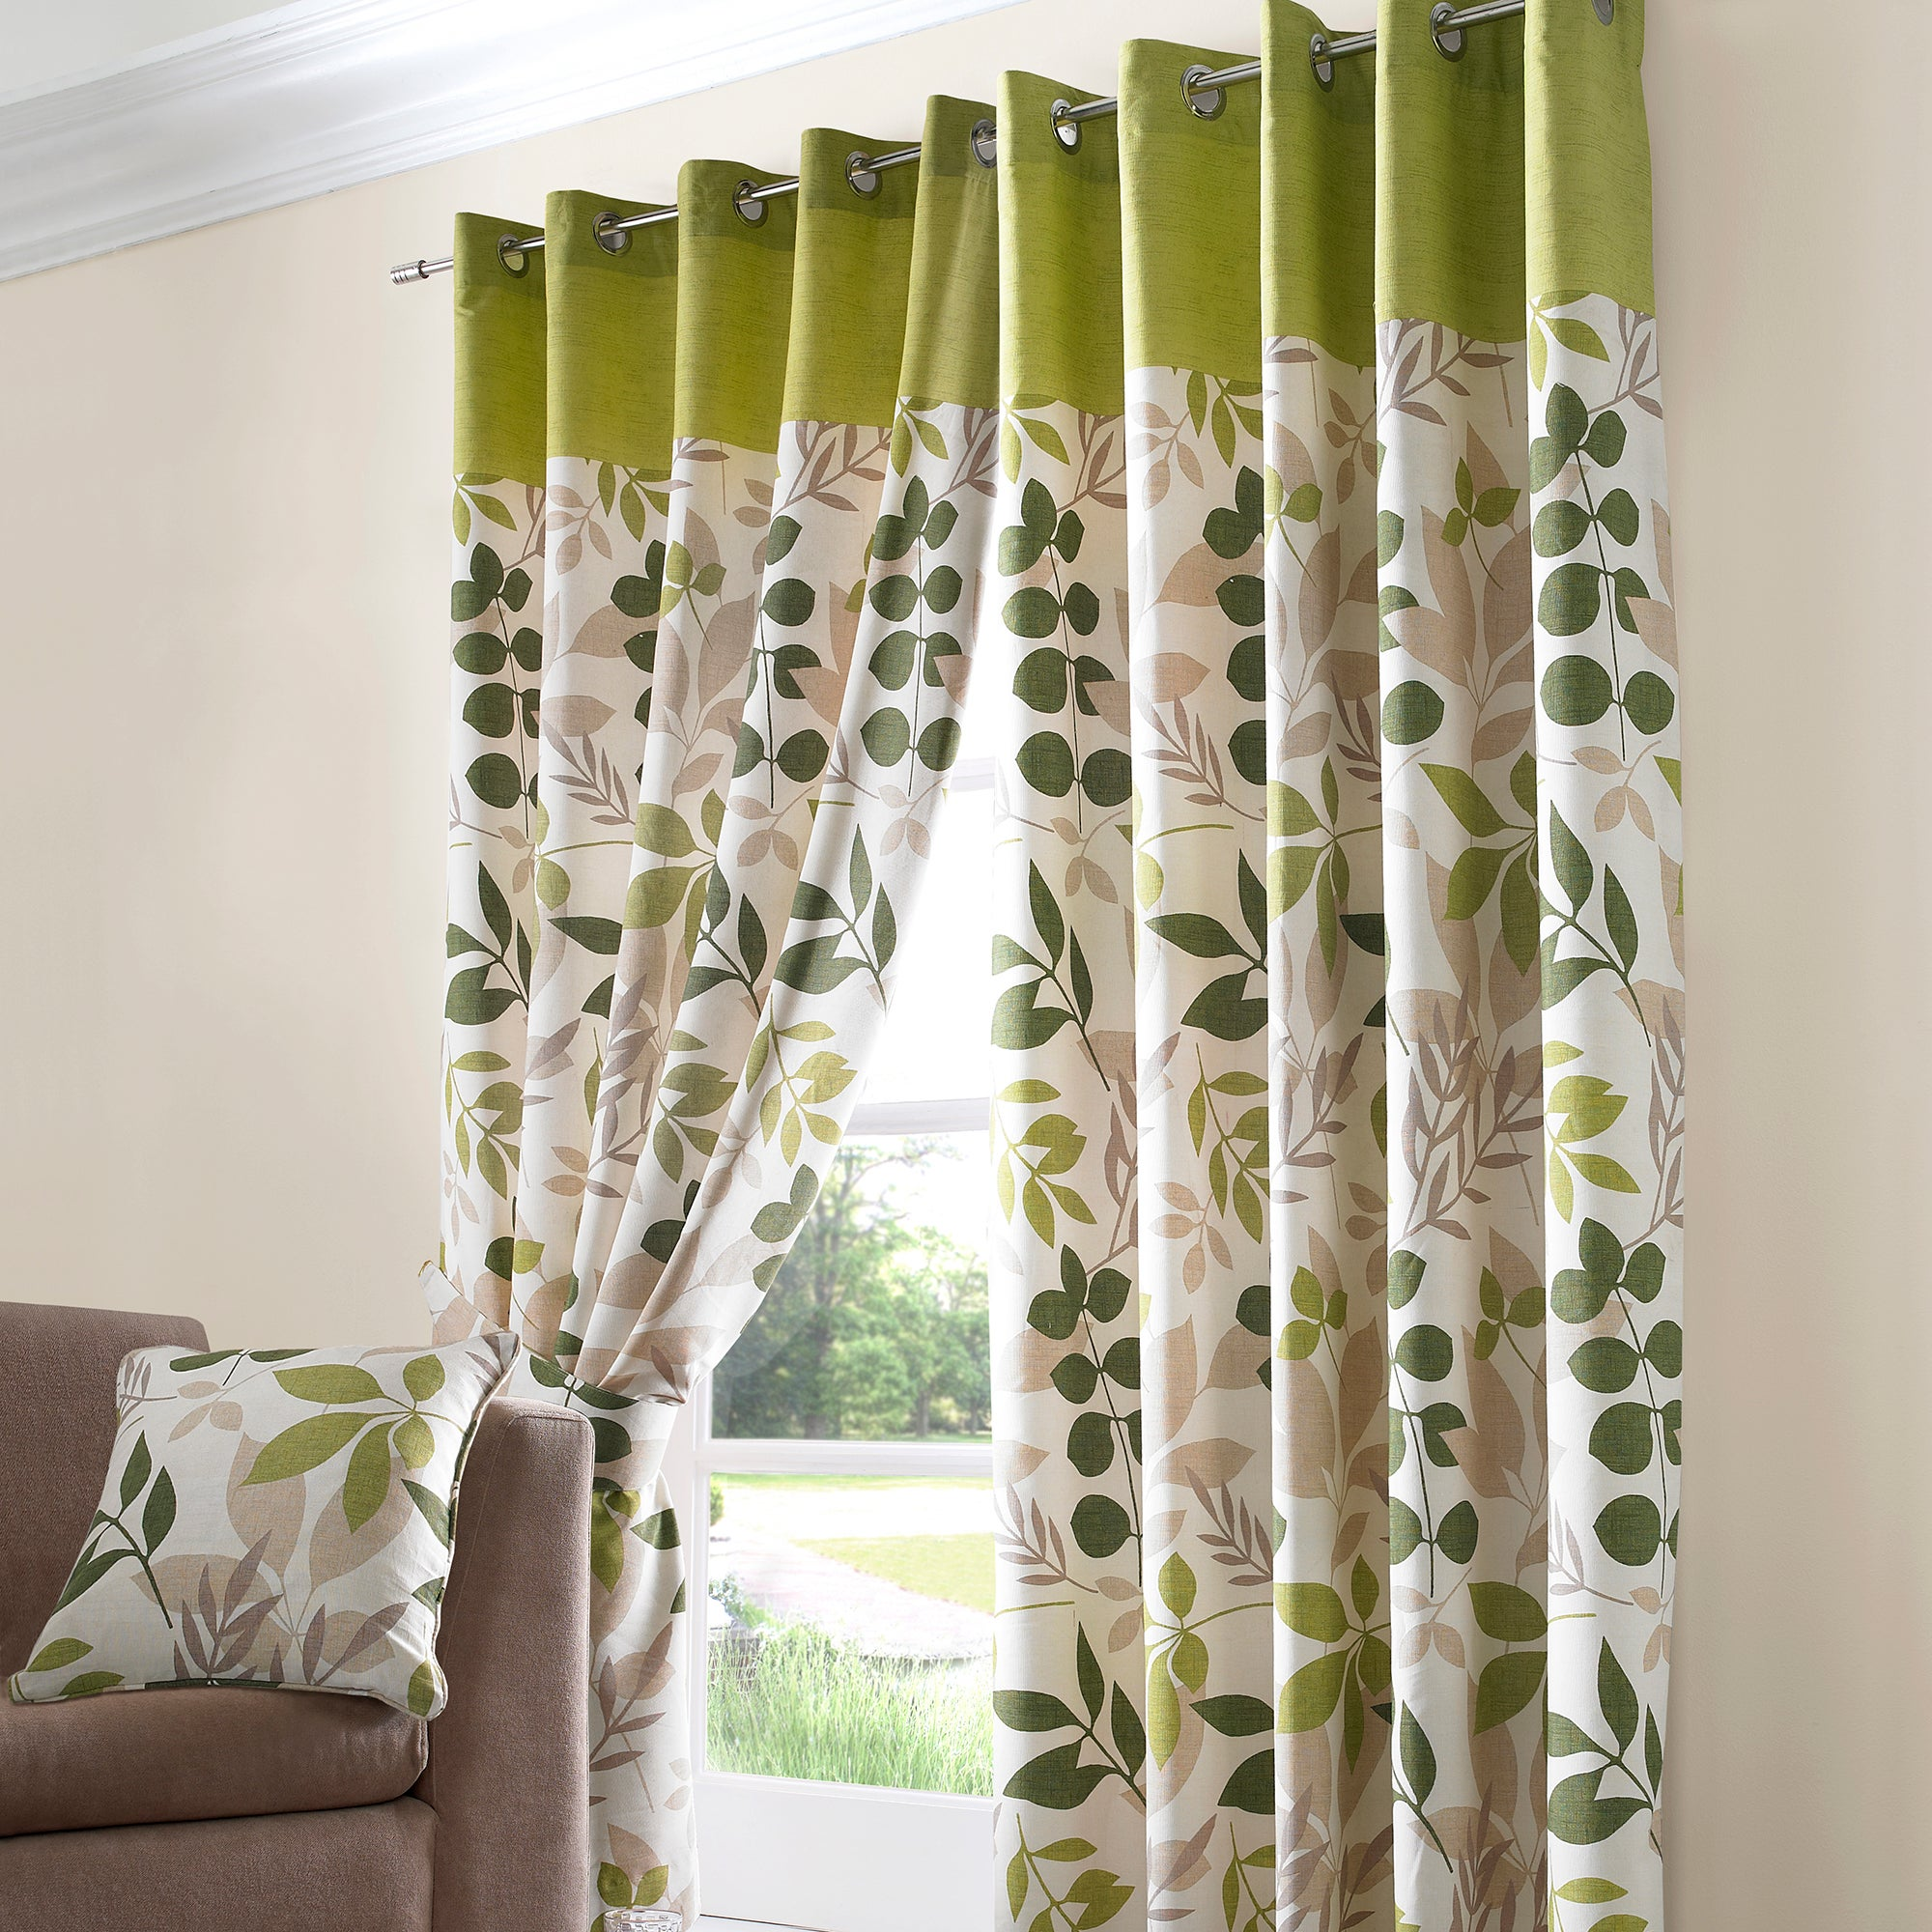 Green Eyelet Curtains Price Comparison Results